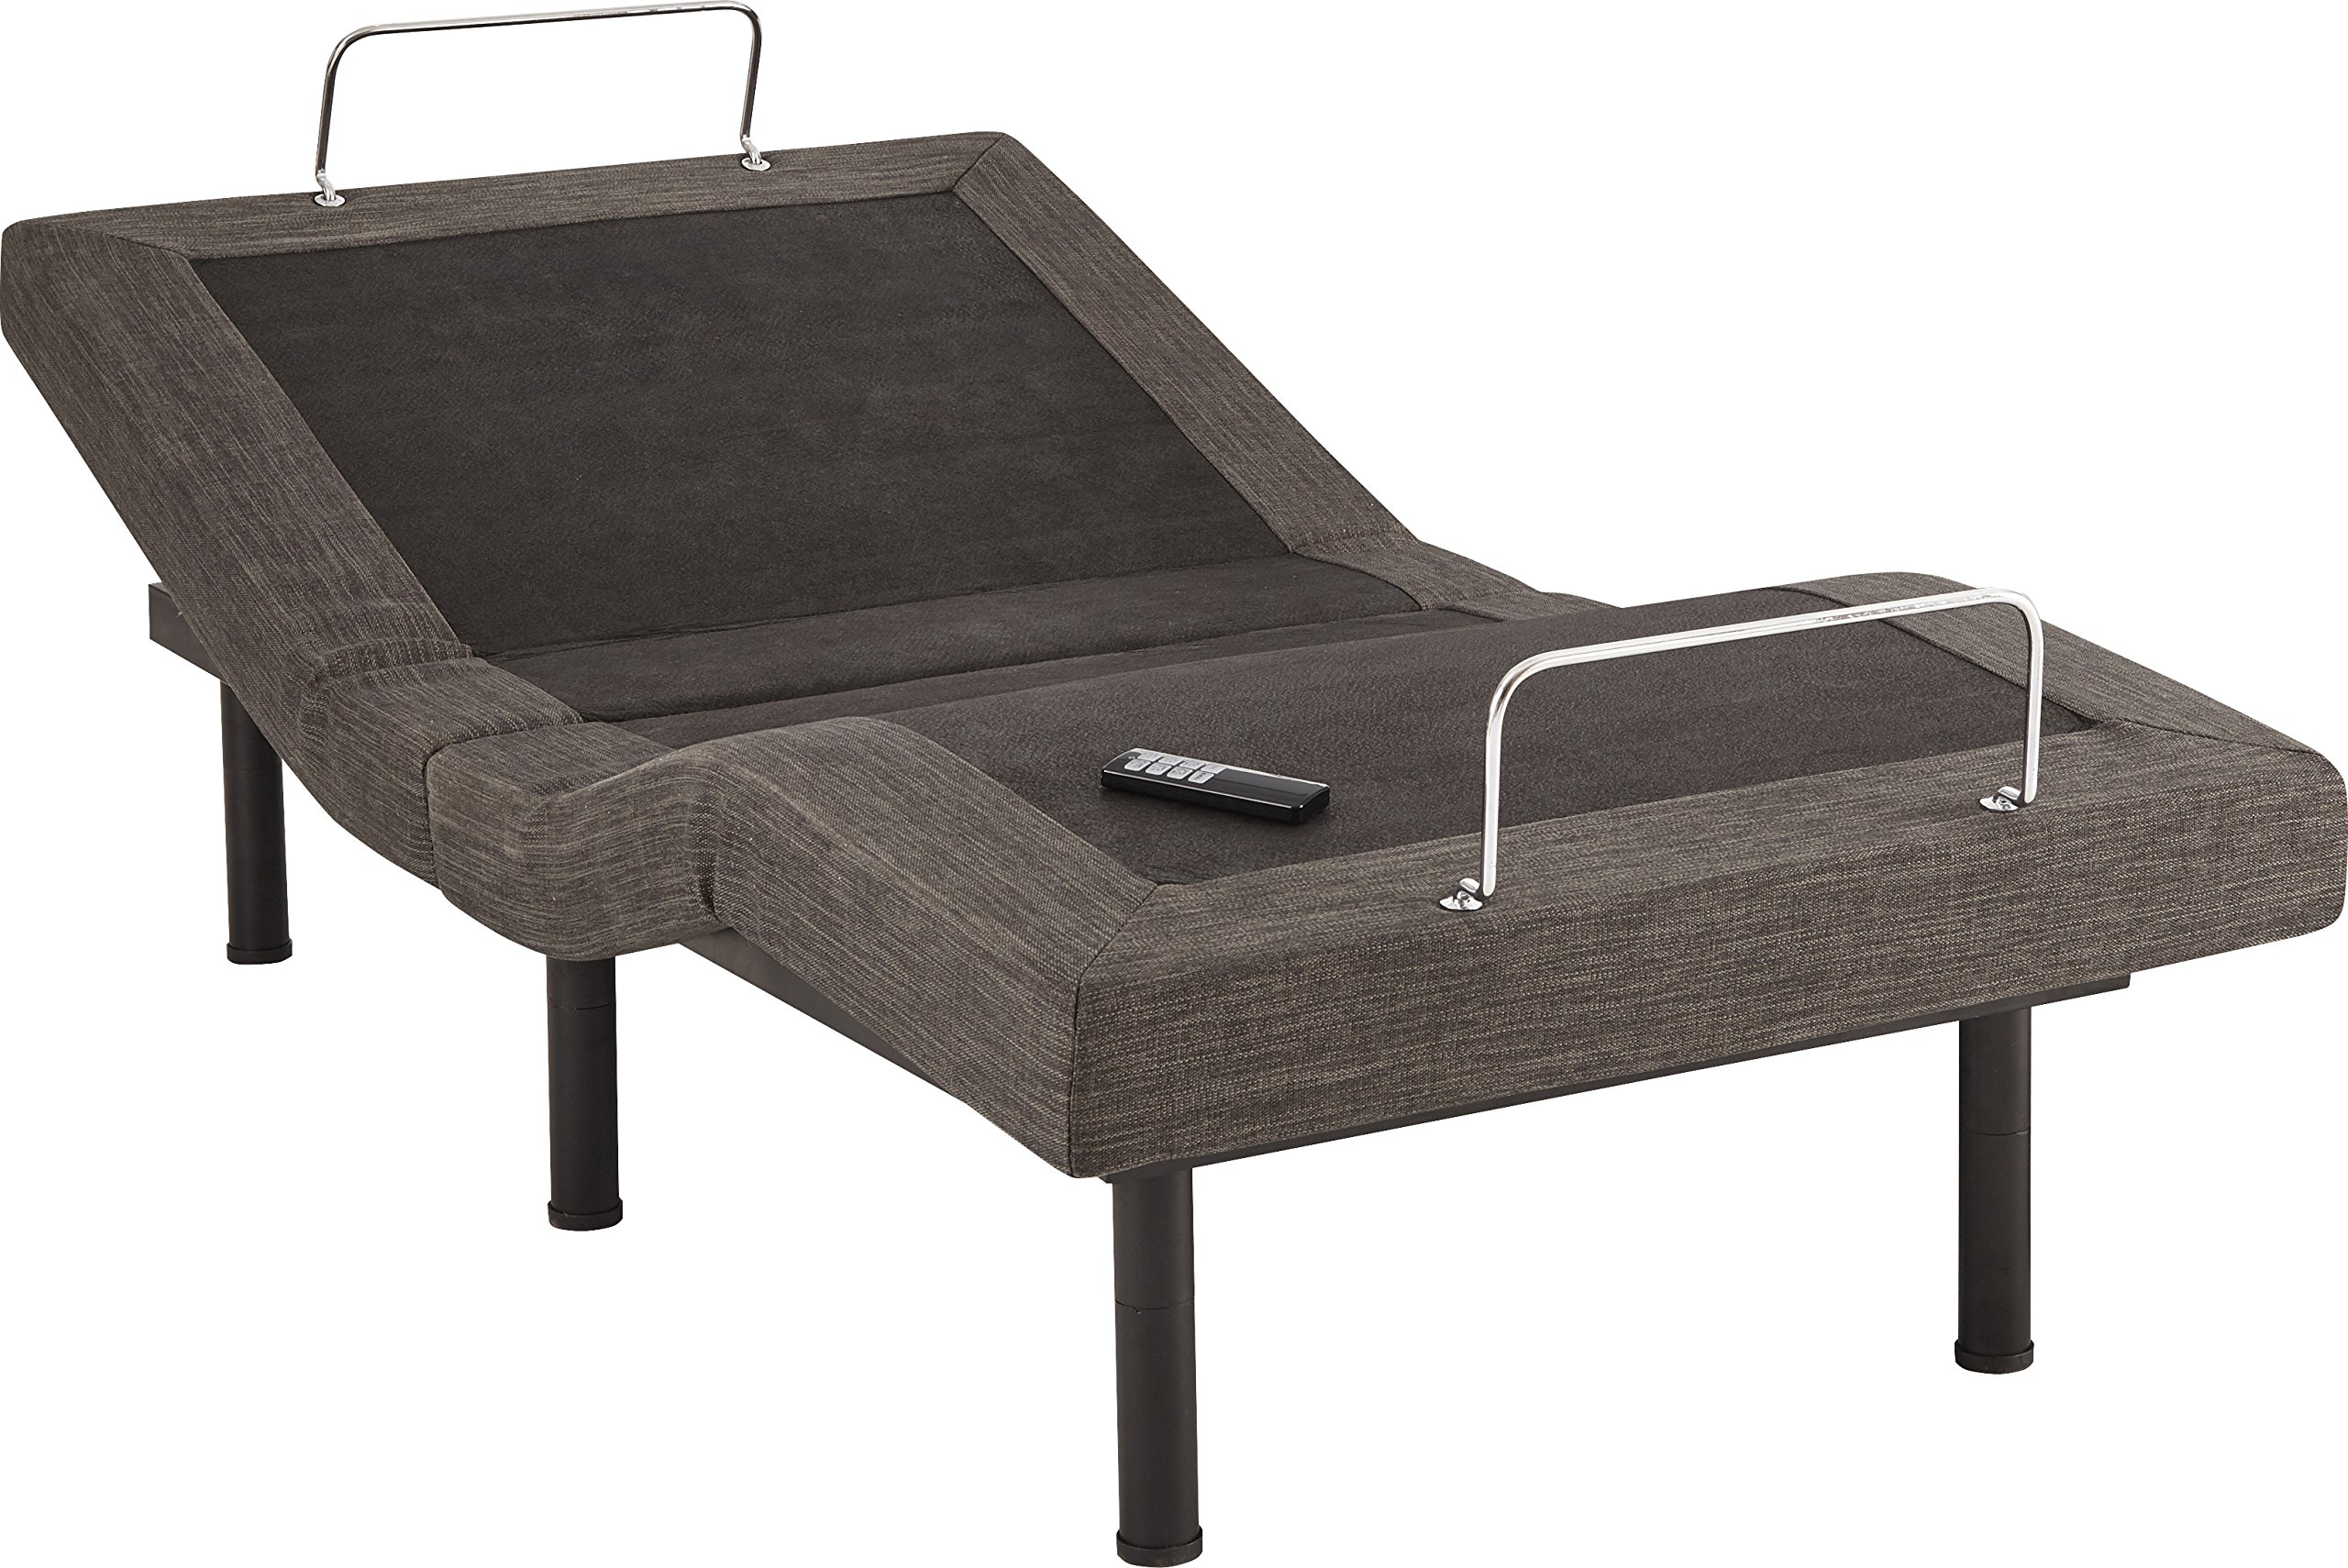 Flex Form Lifestyle Adjustable Bed Frame / Mattress Foundation with Wireless Remote, Twin XL/Split King by Flex Form